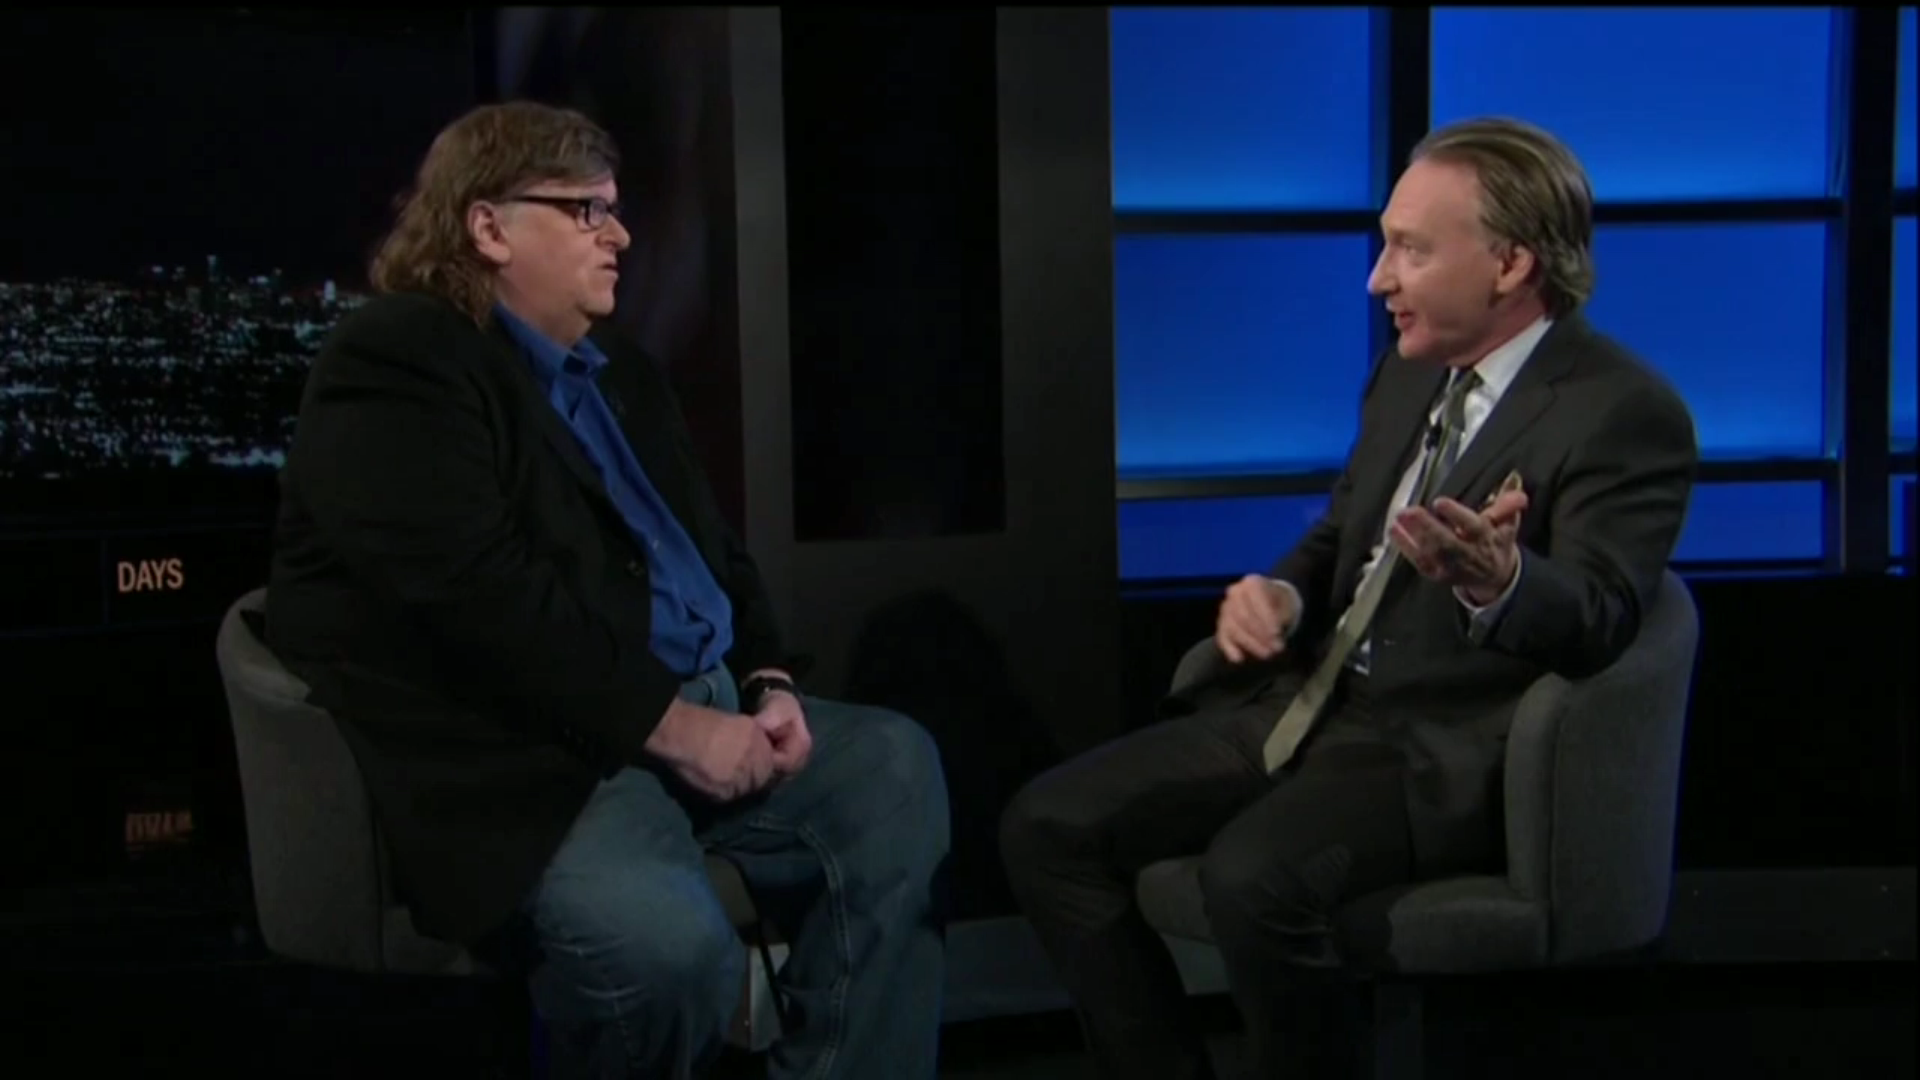 Michael Moore Blames GOP 'Race Hatred' for Flint Pollution, But Also Implicates Obama